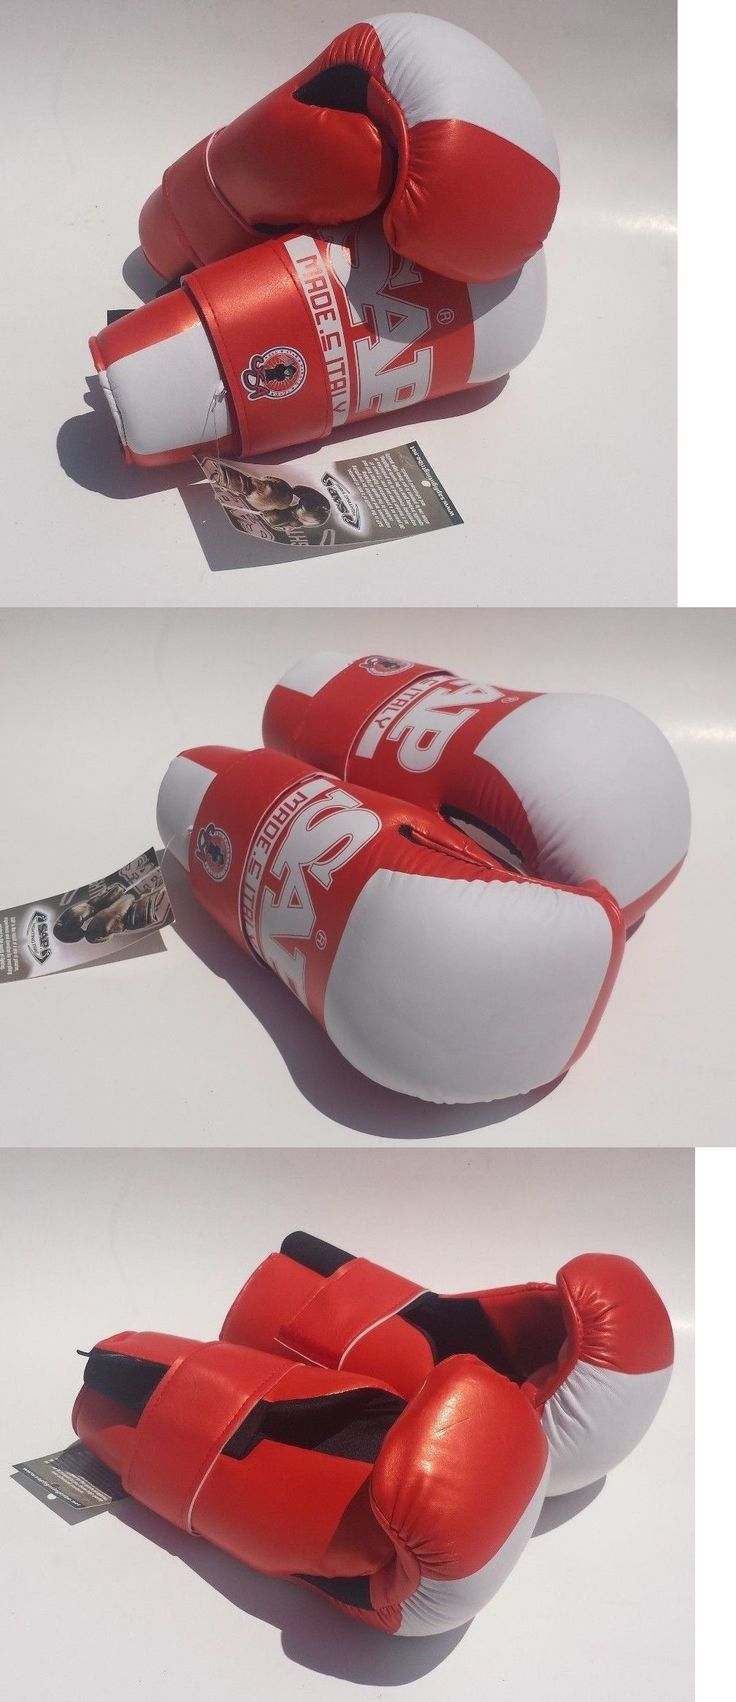 Other Combat Sport Protection 179783: Sap Fighting Tribe Karate Sparring Gloves Orange White Open Hand Pads Size M -> BUY IT NOW ONLY: $30 on eBay!